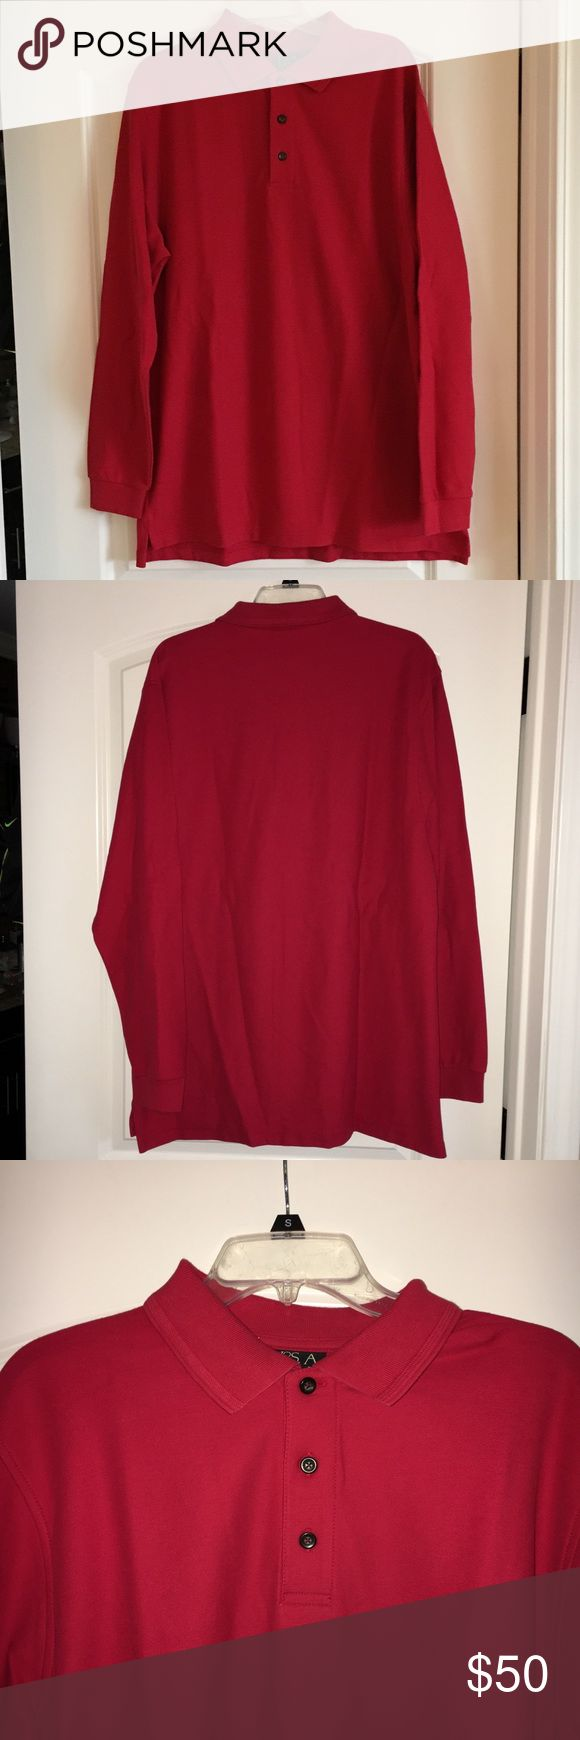 Men's Jos A Banks Red Long Sleeve Polo NWT NEW WITH TAGS  Men's Red Joseph A Banks Traveler's Collection Long Sleeved Polo shirt  Size XL  100% Cotton Made in India IT IS WELL MADE AND A NICE THICK MATERIAL If you have any questions or want other pictures please let me know. Thanks so much! Shirts Tees - Long Sleeve